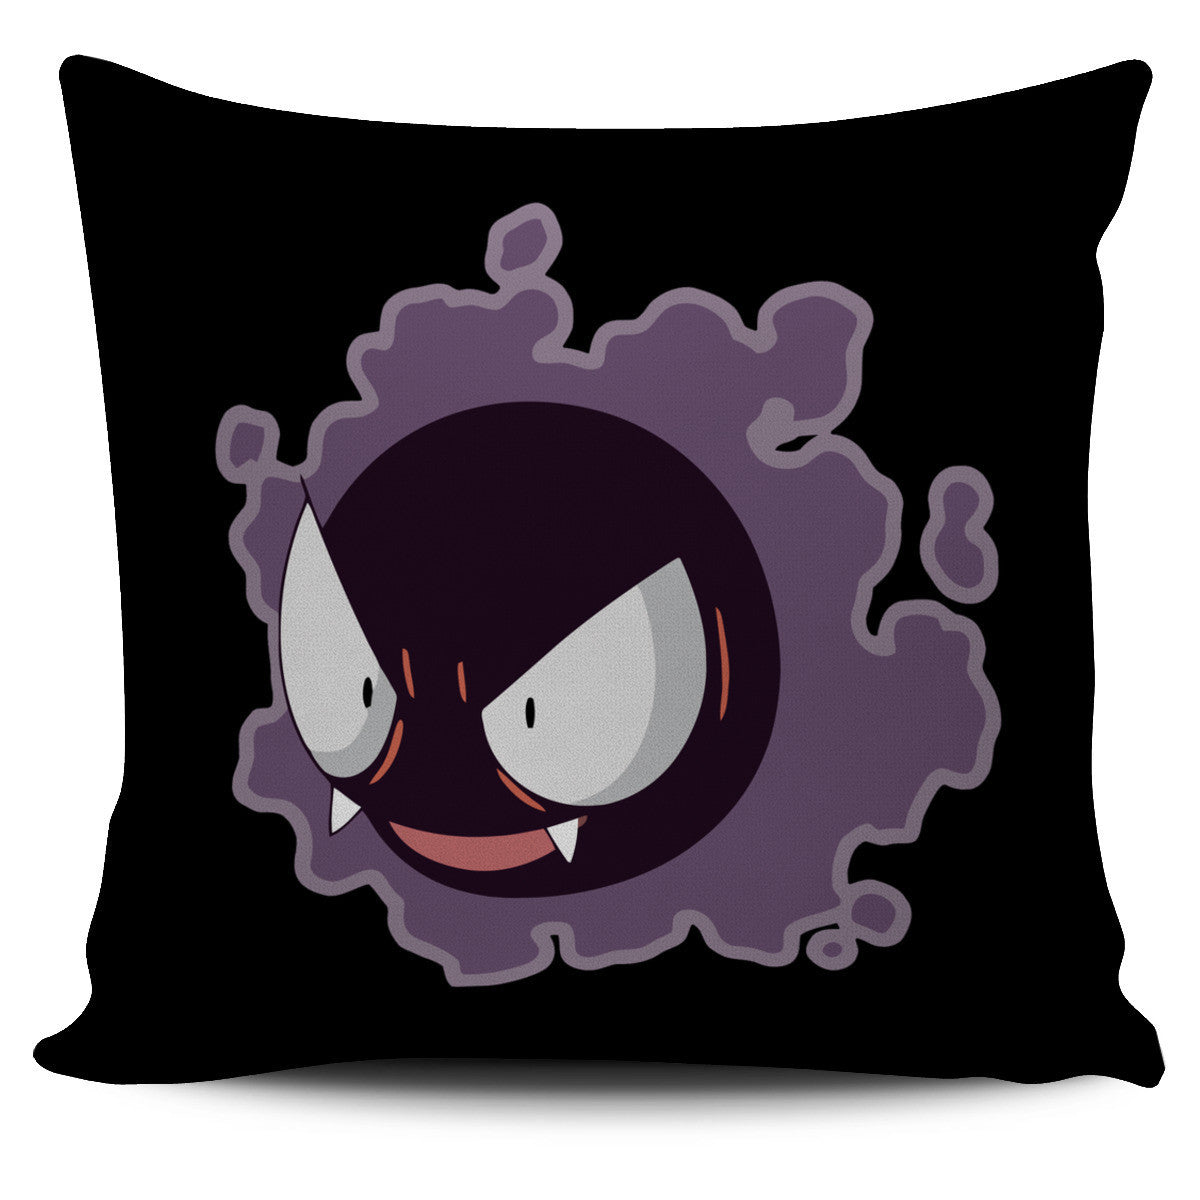 Ghastly Transformation Pillows